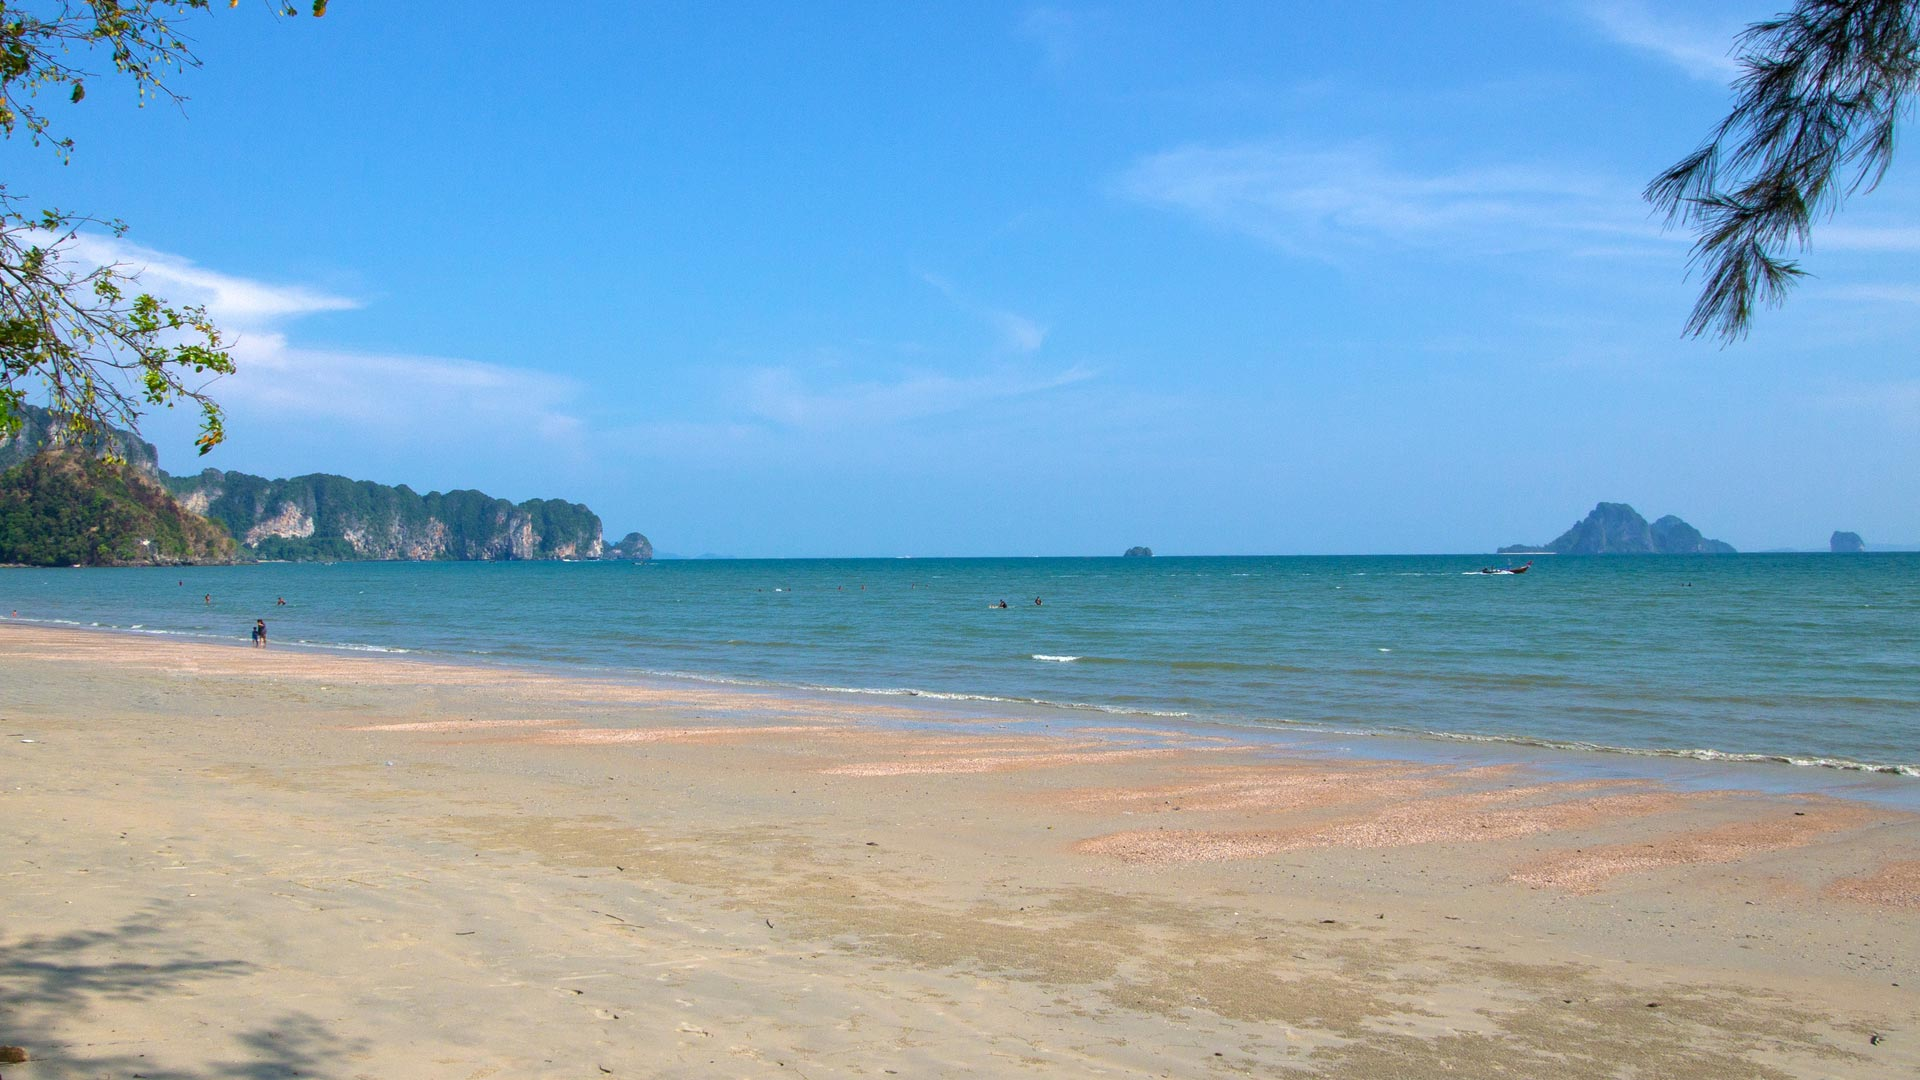 The Nopparat Thara Beach With A View At Koh Poda In Ao Nang Krabi